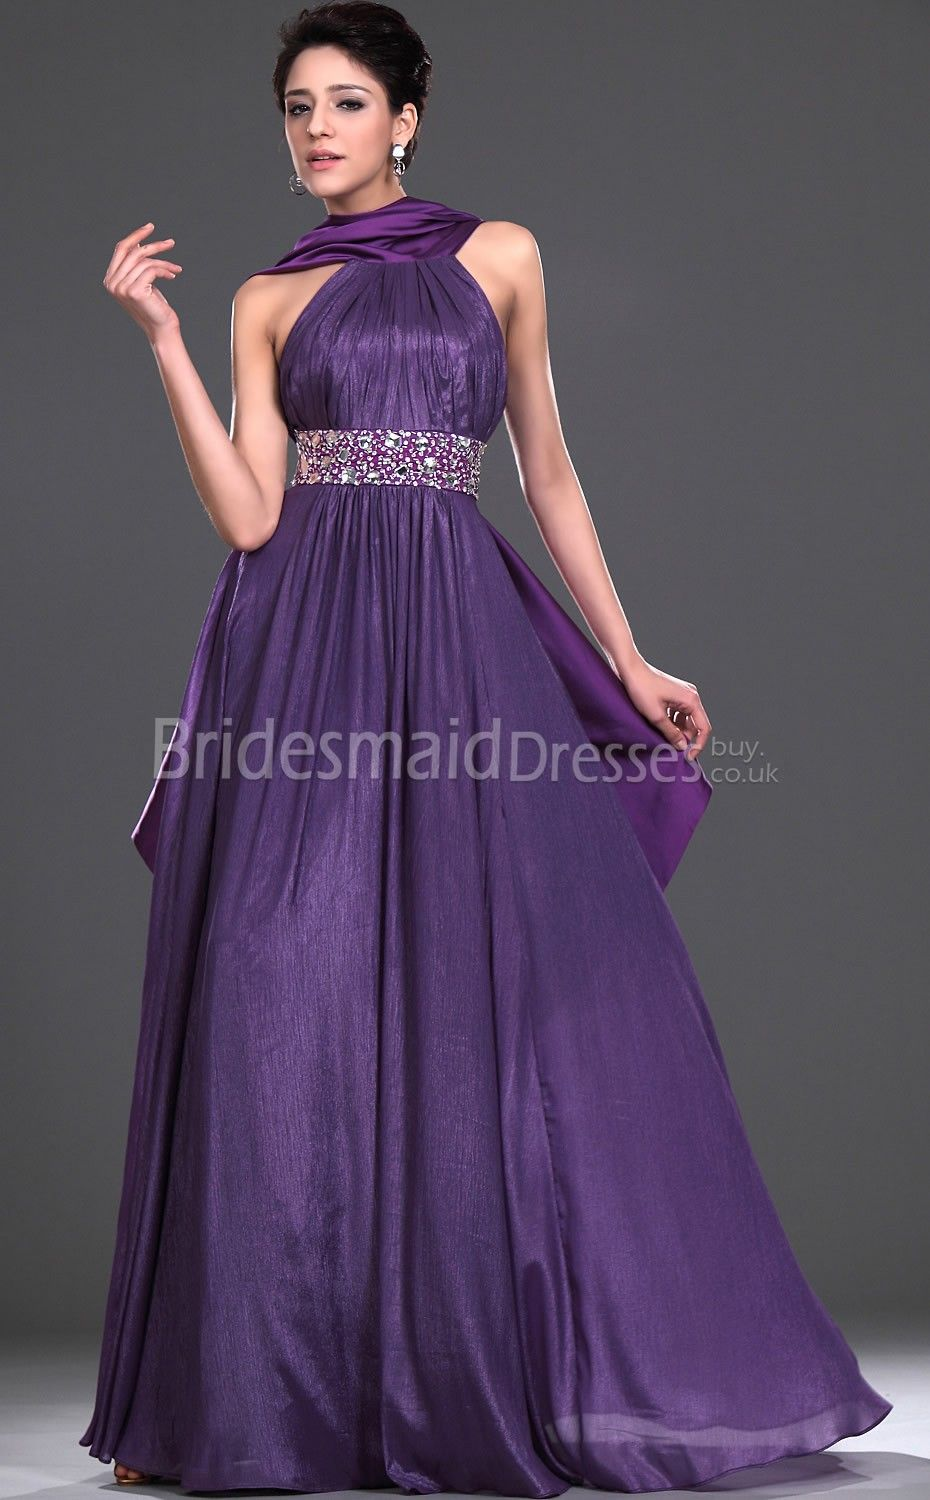 purple bridesmaid dresses | Purple bridesmaid dresses for a summer ...